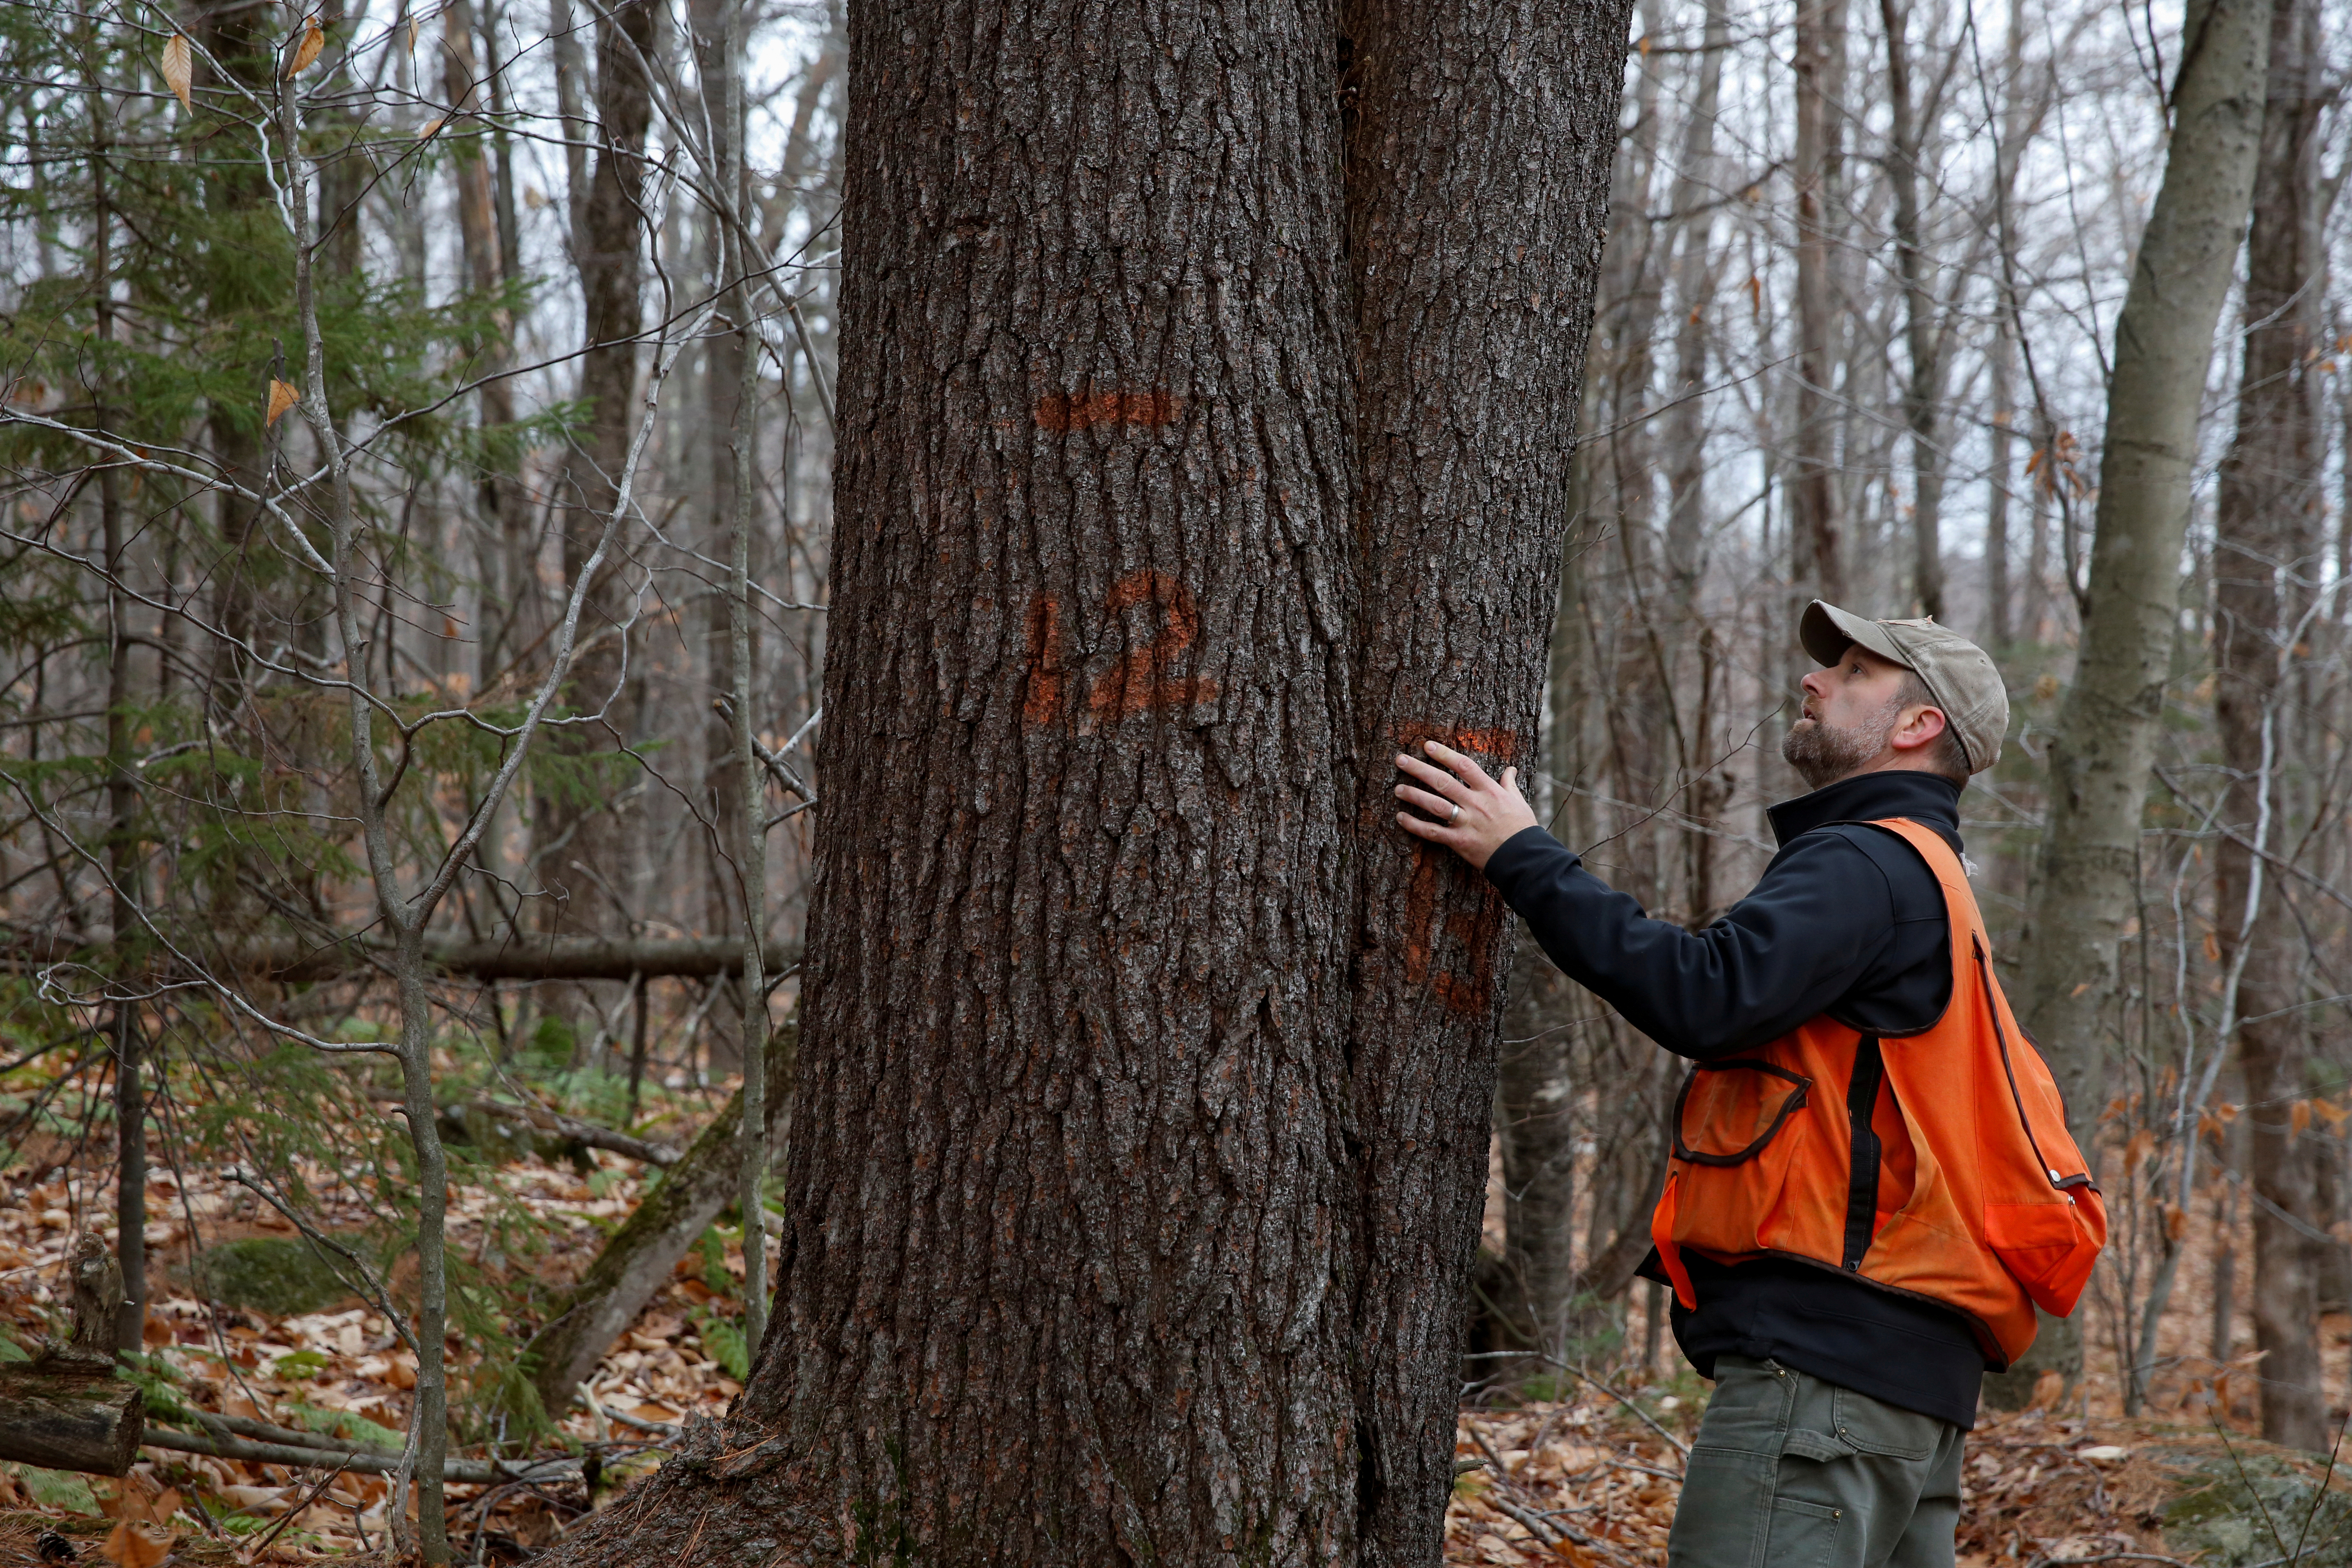 Chris Pryor, director of forest stewardship at New England Forestry Foundation, looks at marked trees in the Hersey Mountain Wilderness in New Hampton, New Hampshire, U.S., December 4, 2020. REUTERS/Elizabeth Frantz/File Photo